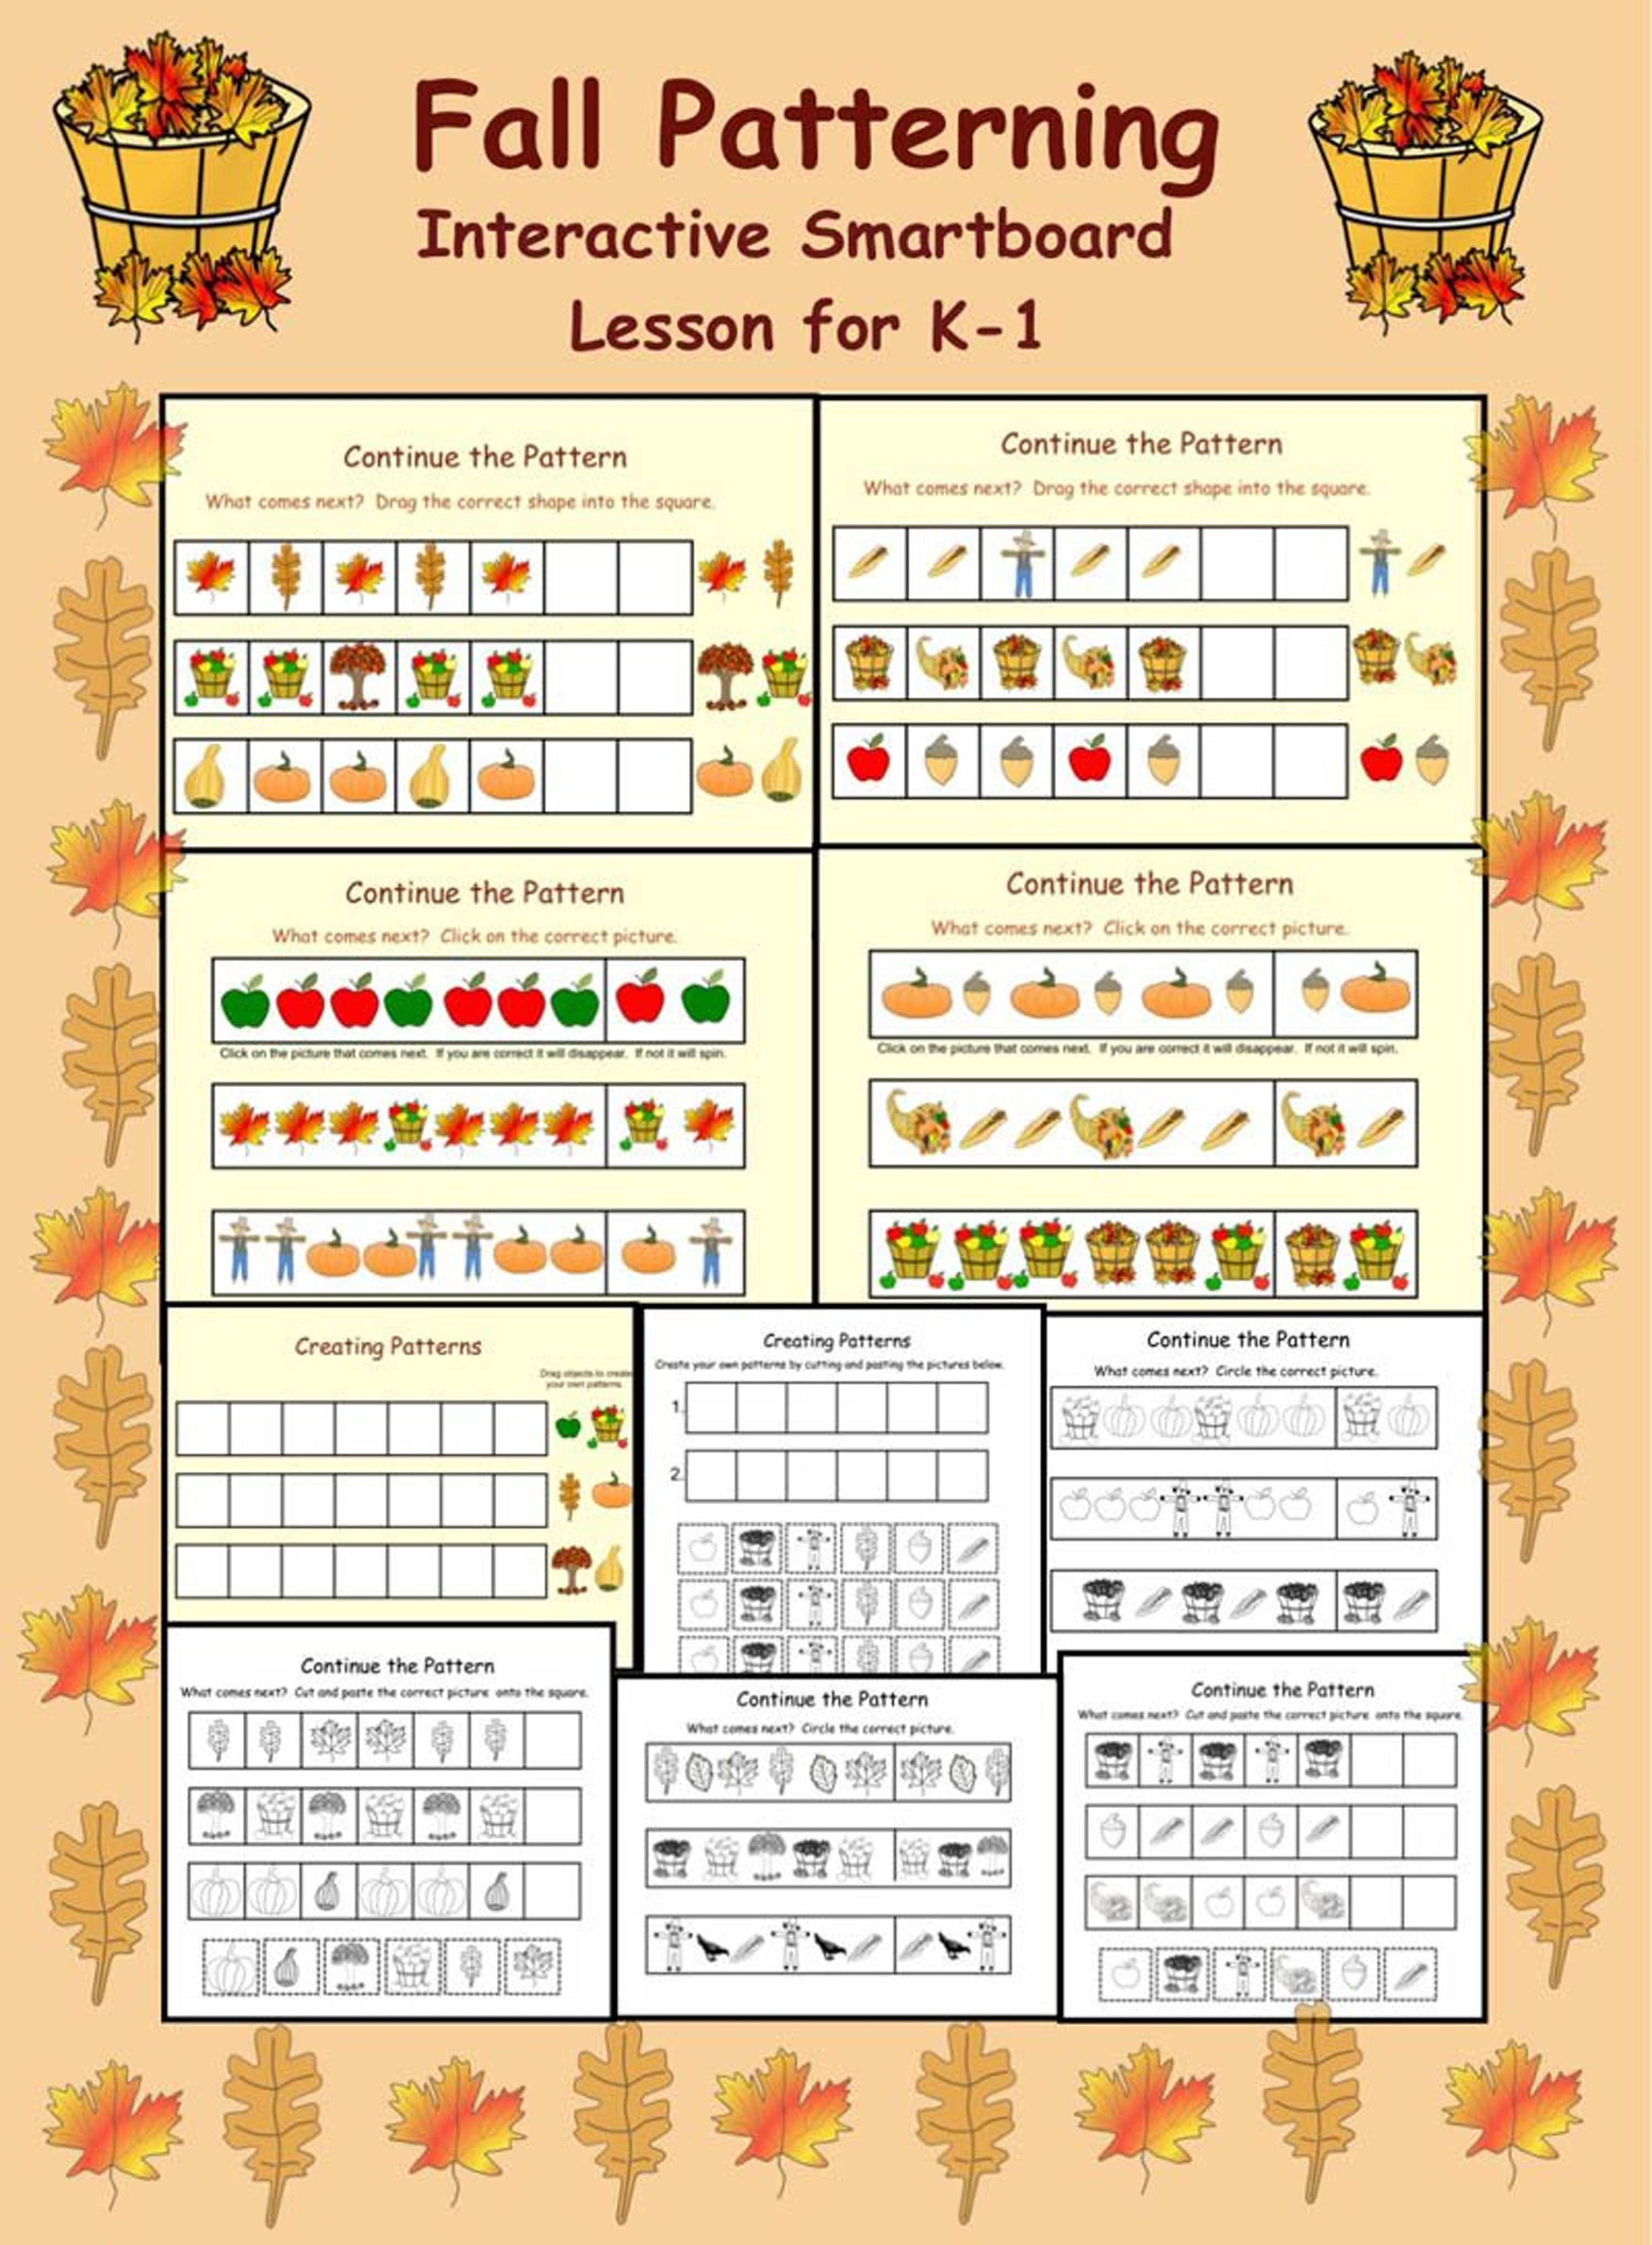 Fall Patterning Smartboard Activities For K 1